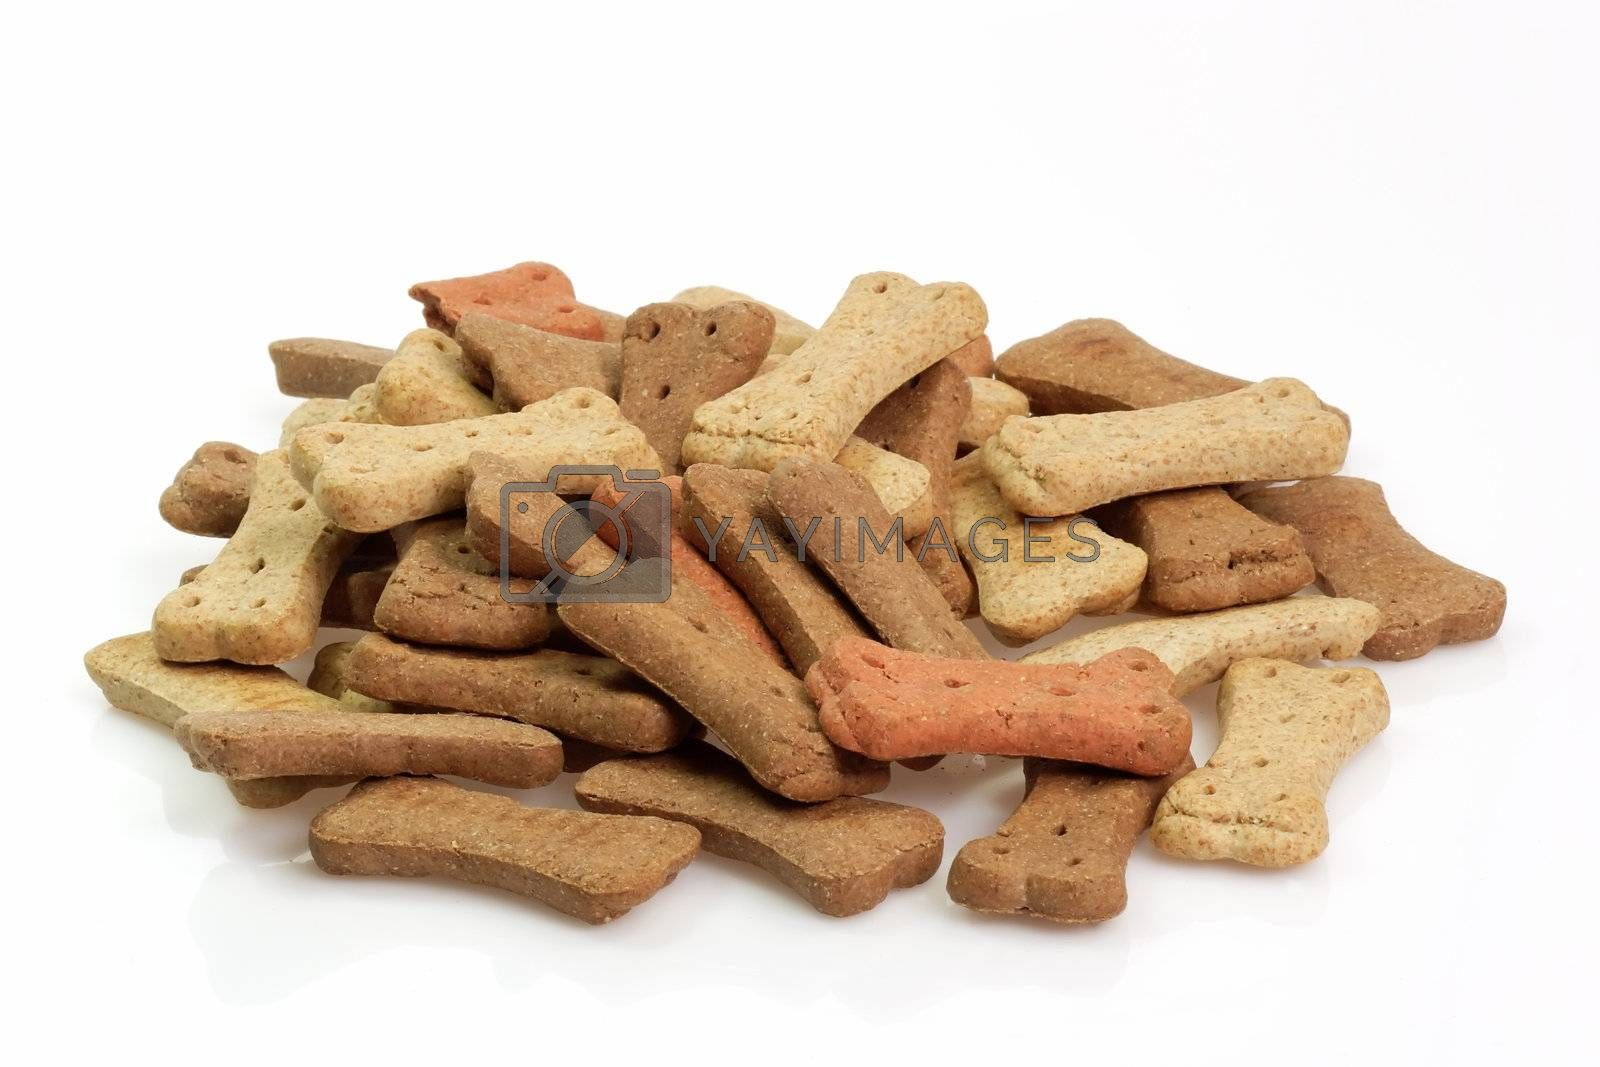 Dry dog food on bright background